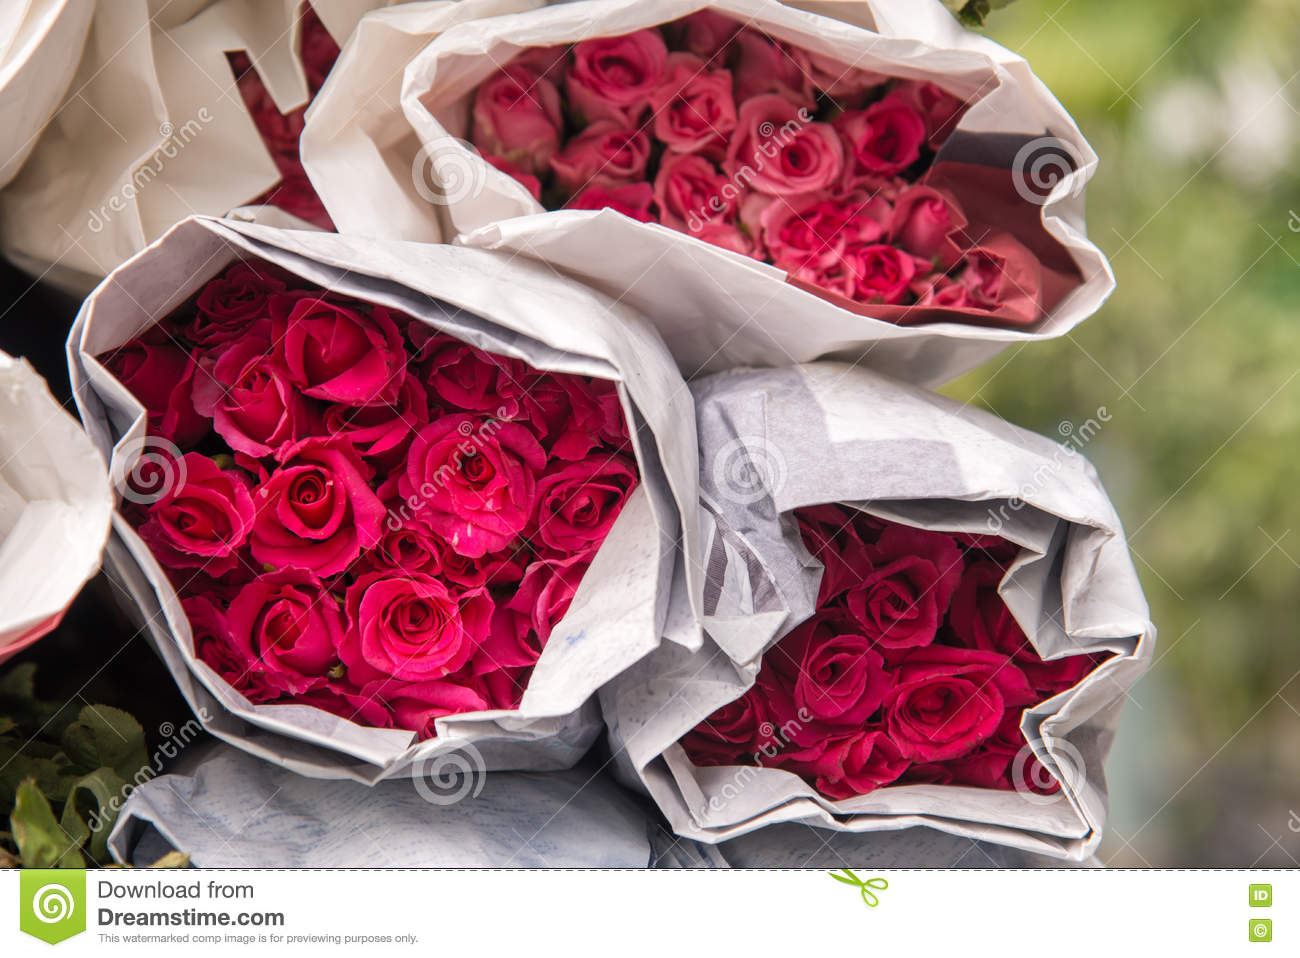 Selling Flowers A Bouquet Of Red Pink Roses Wrapped In Paper